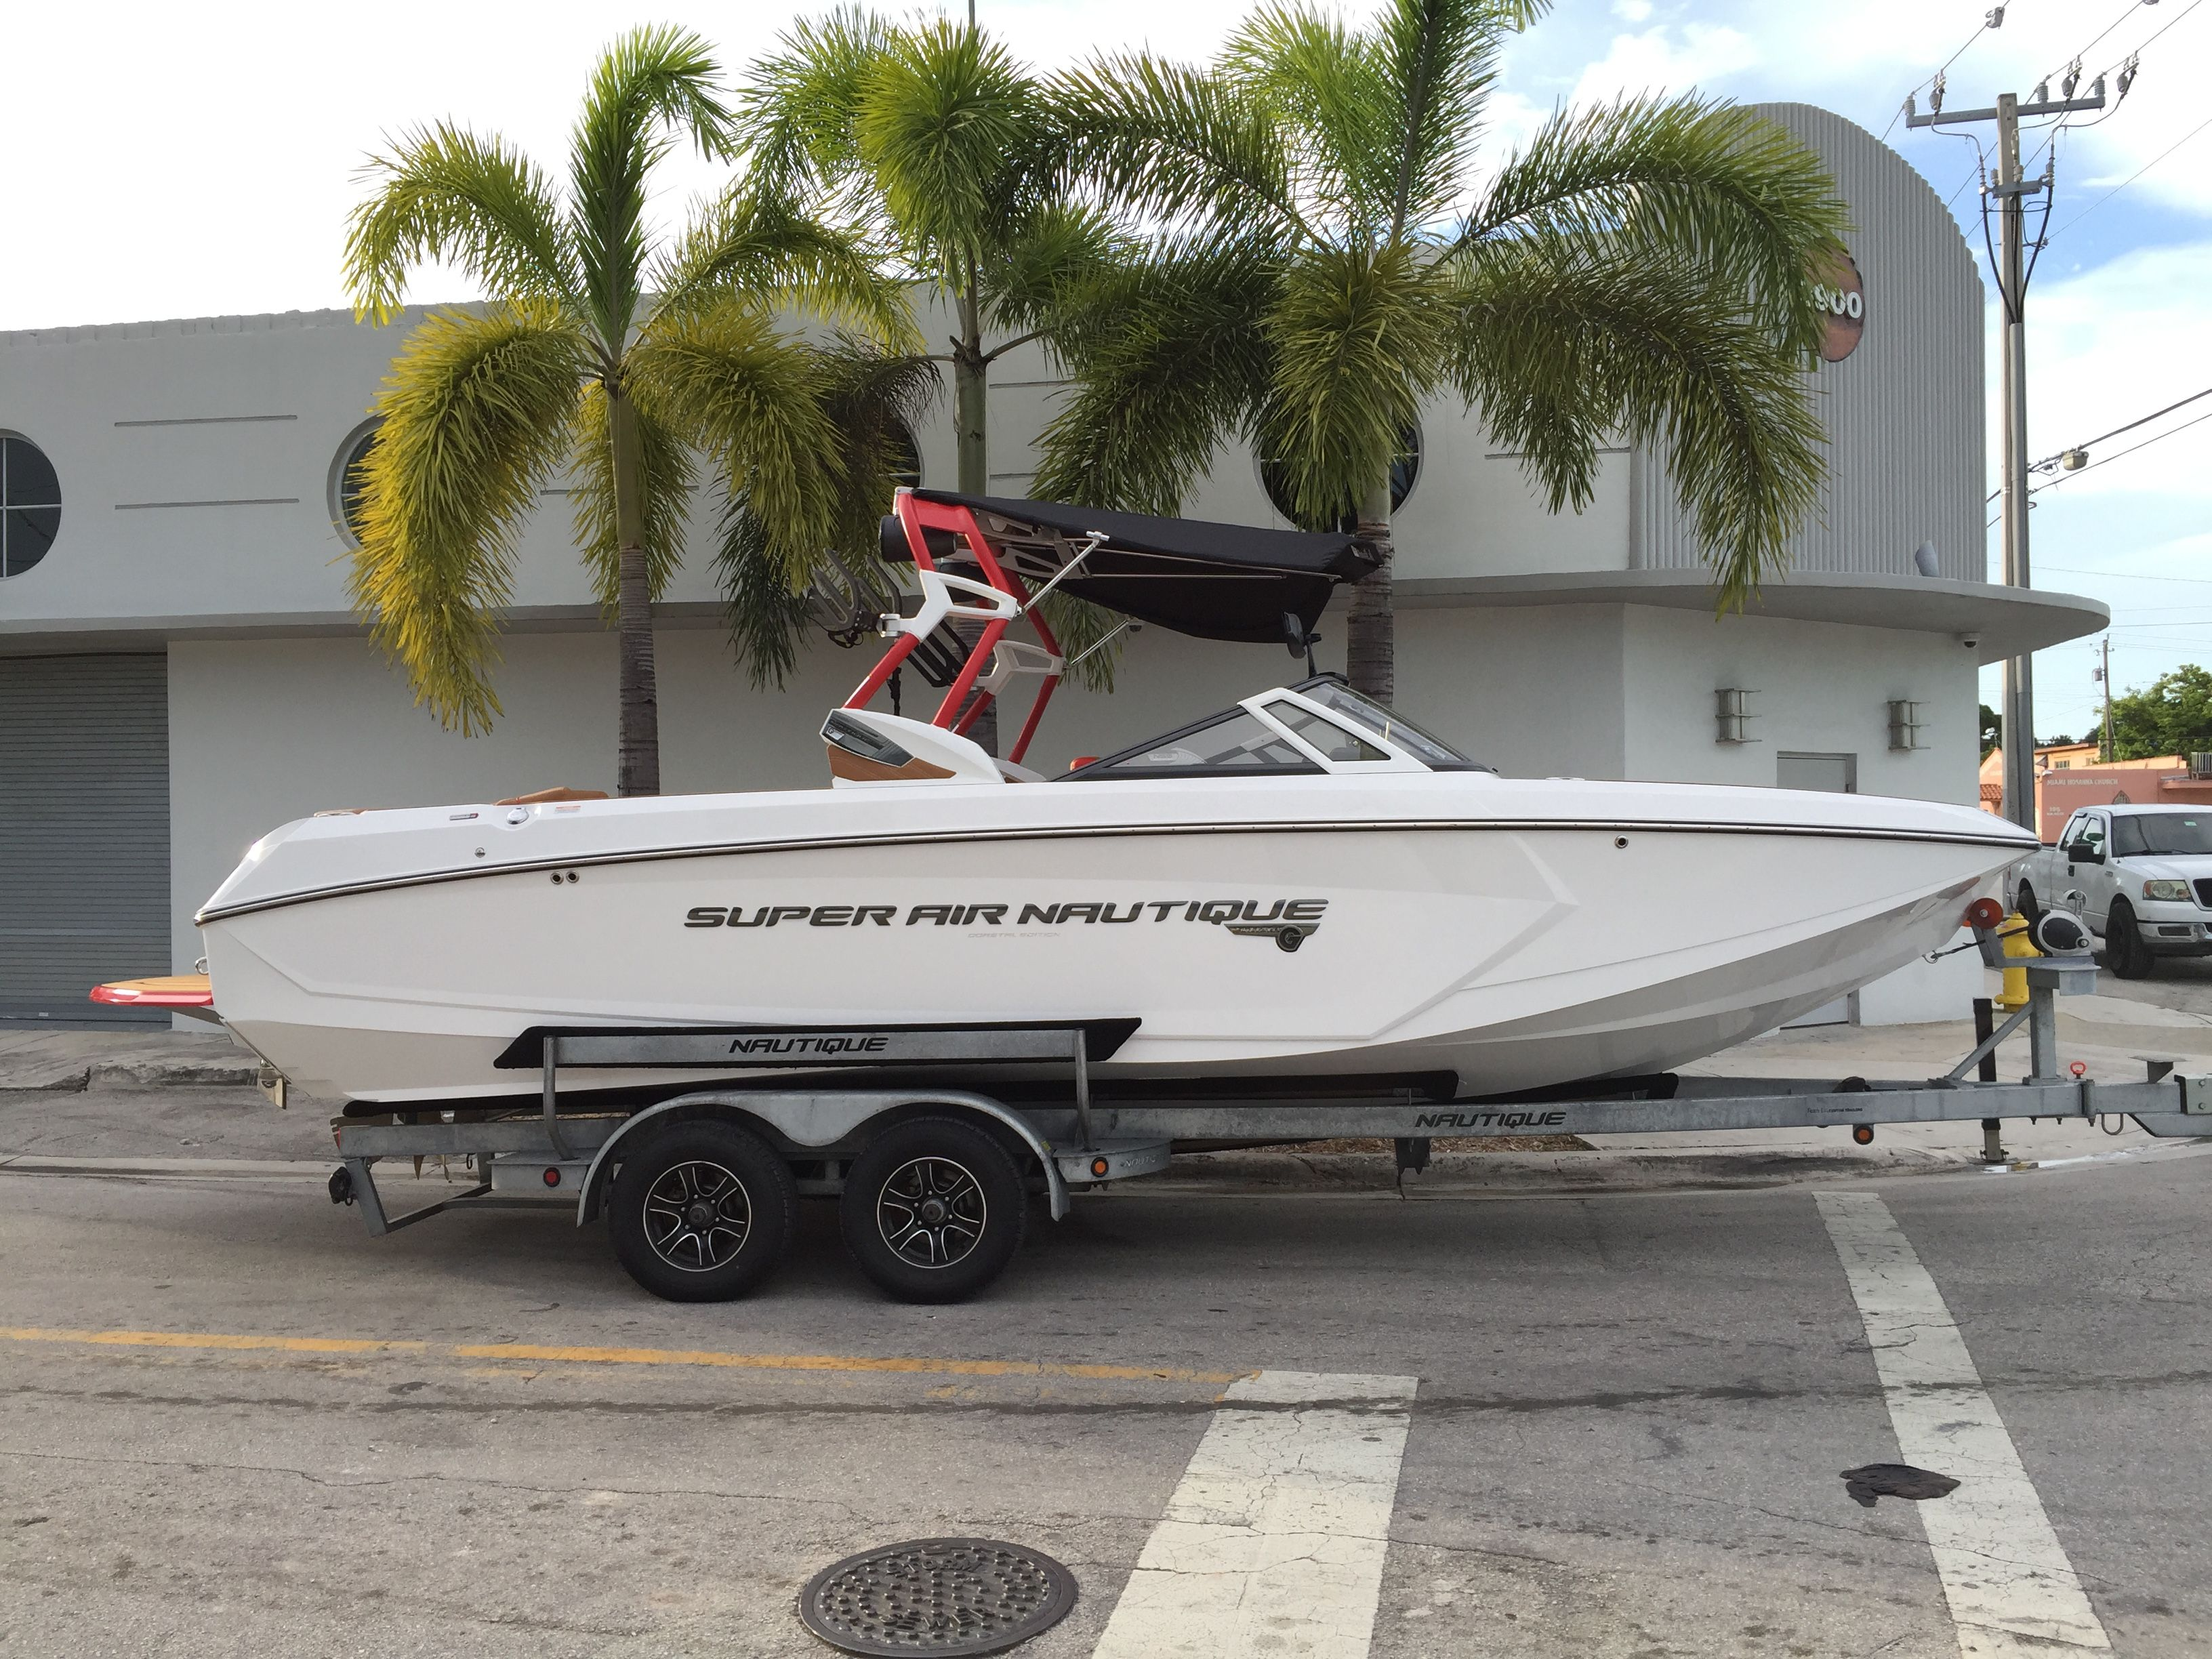 2016 Super Air Nautique G25 Boat, Boats for sale, Lake toys